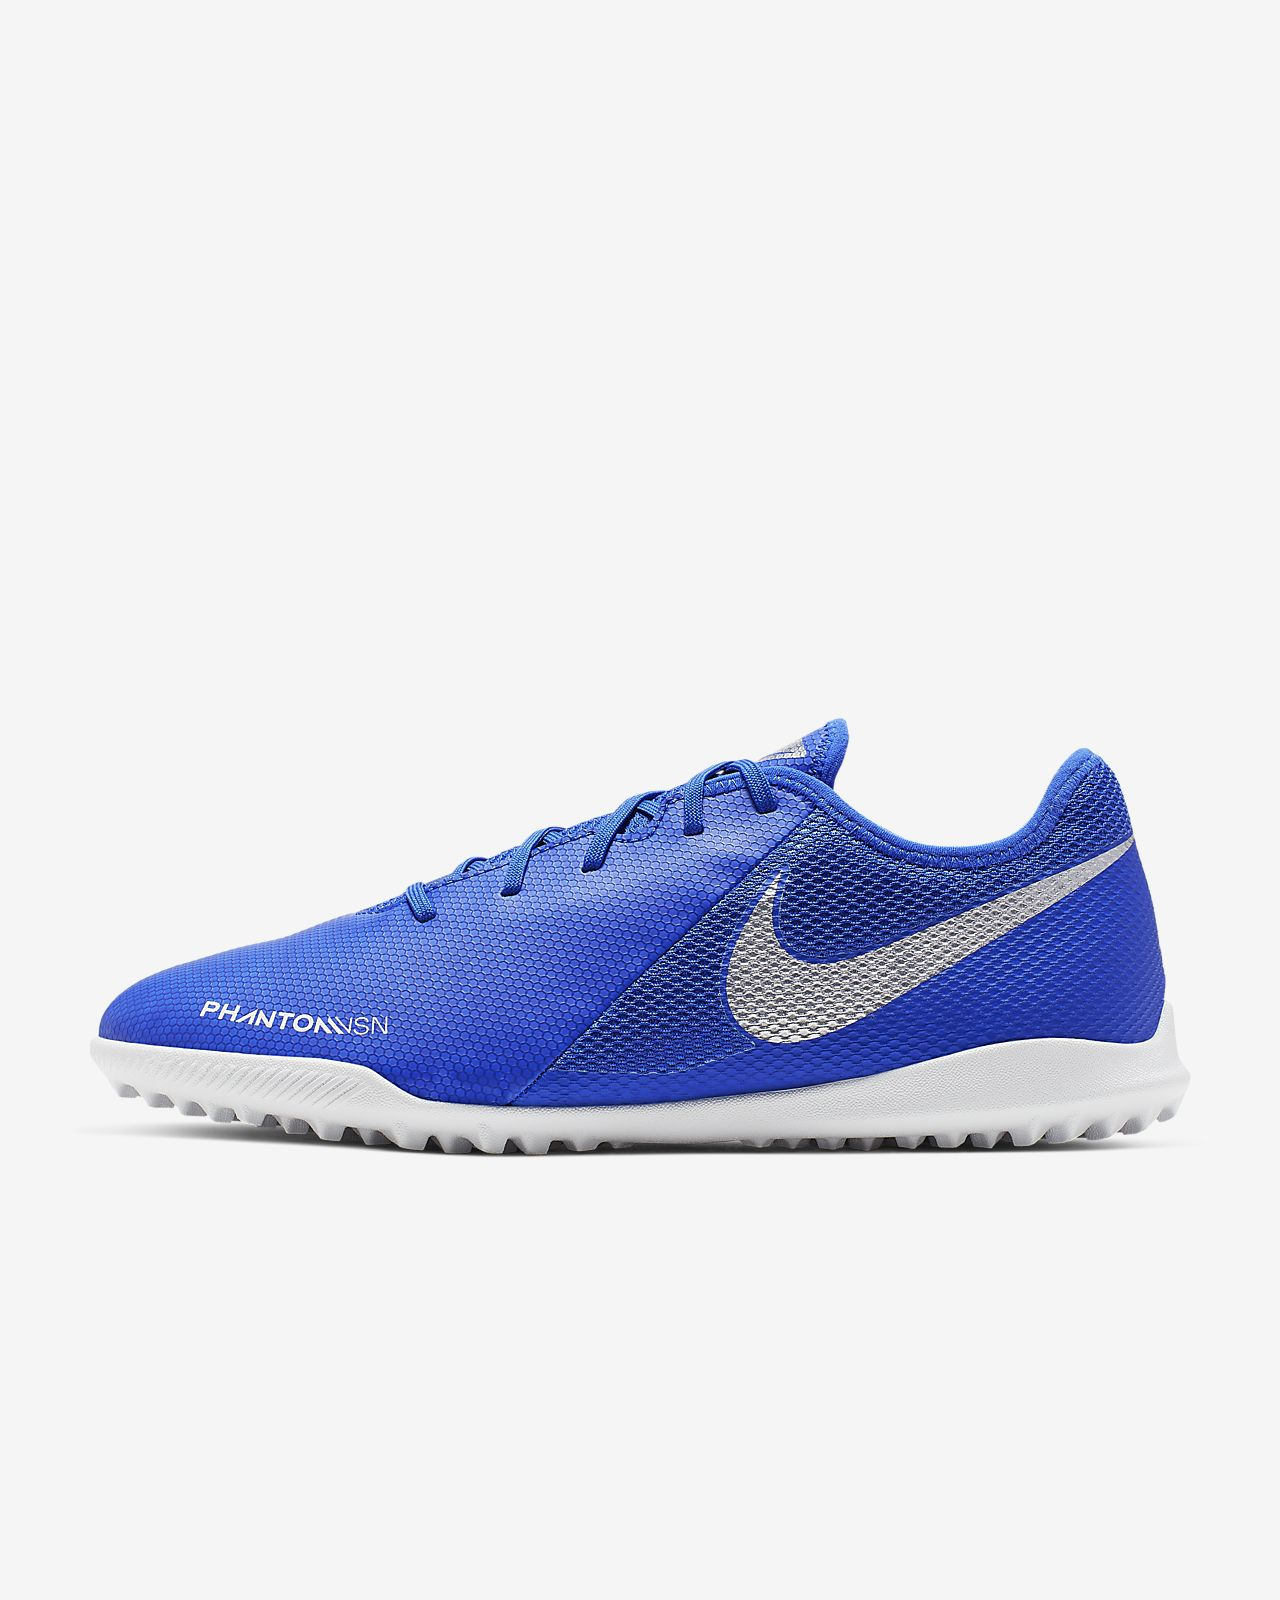 online store 5406f 0a089 ... Chaussure de football à crampons pour surface synthétique Nike Phantom  Vision Academy